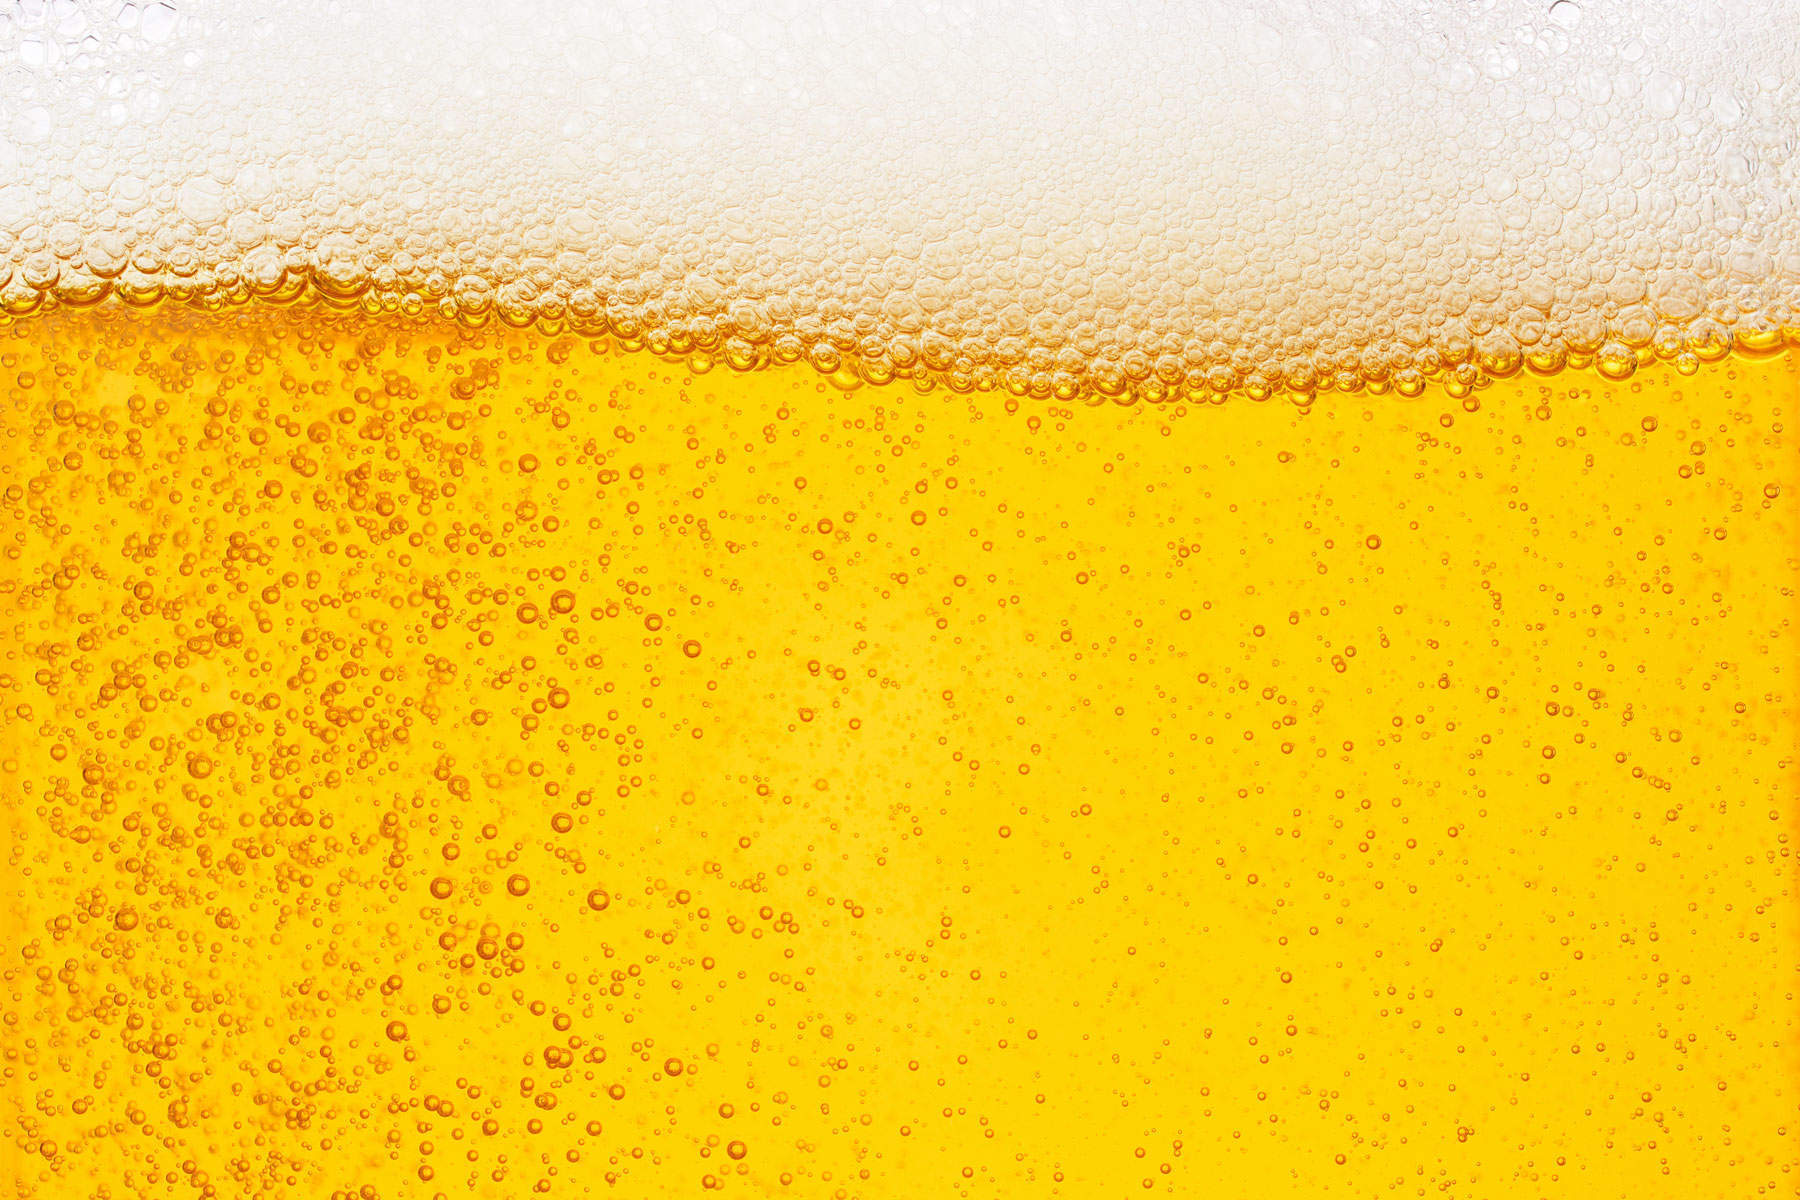 Beat the beer rationing: alternatives to overcome the CO2 shortage